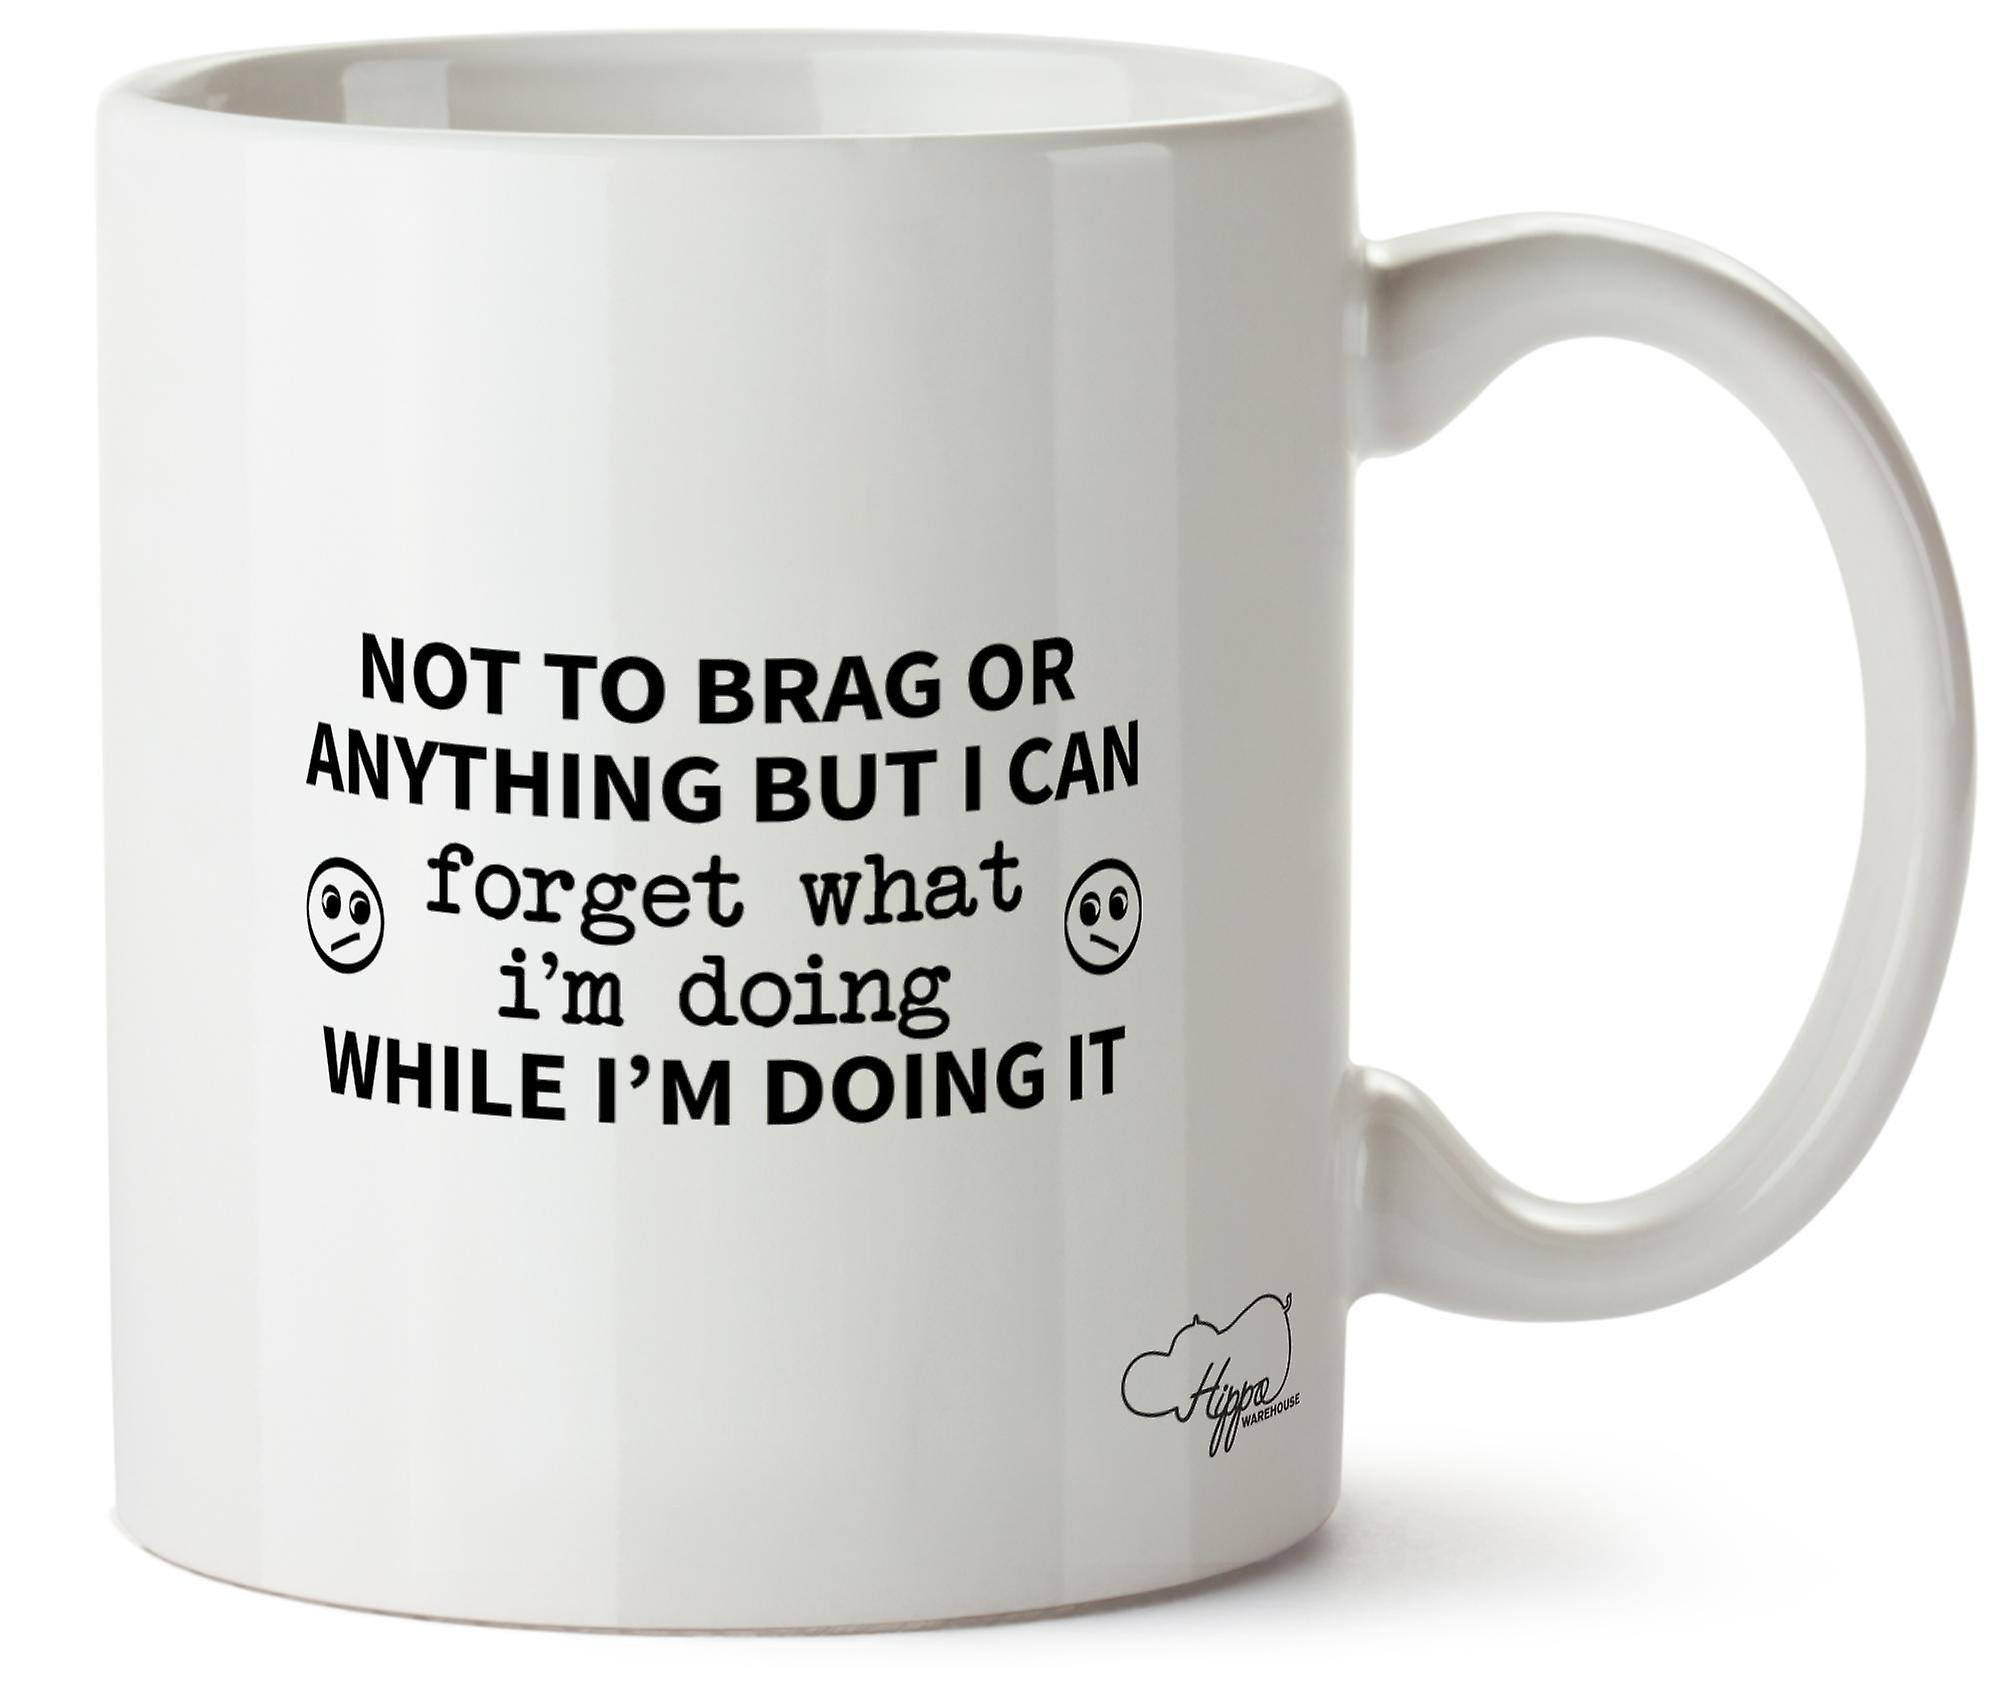 Hippowarehouse Not To Brag Or Anything But I Can Forget What I'm Doing While Doing It Printed Mug Cup Ceramic 10oz